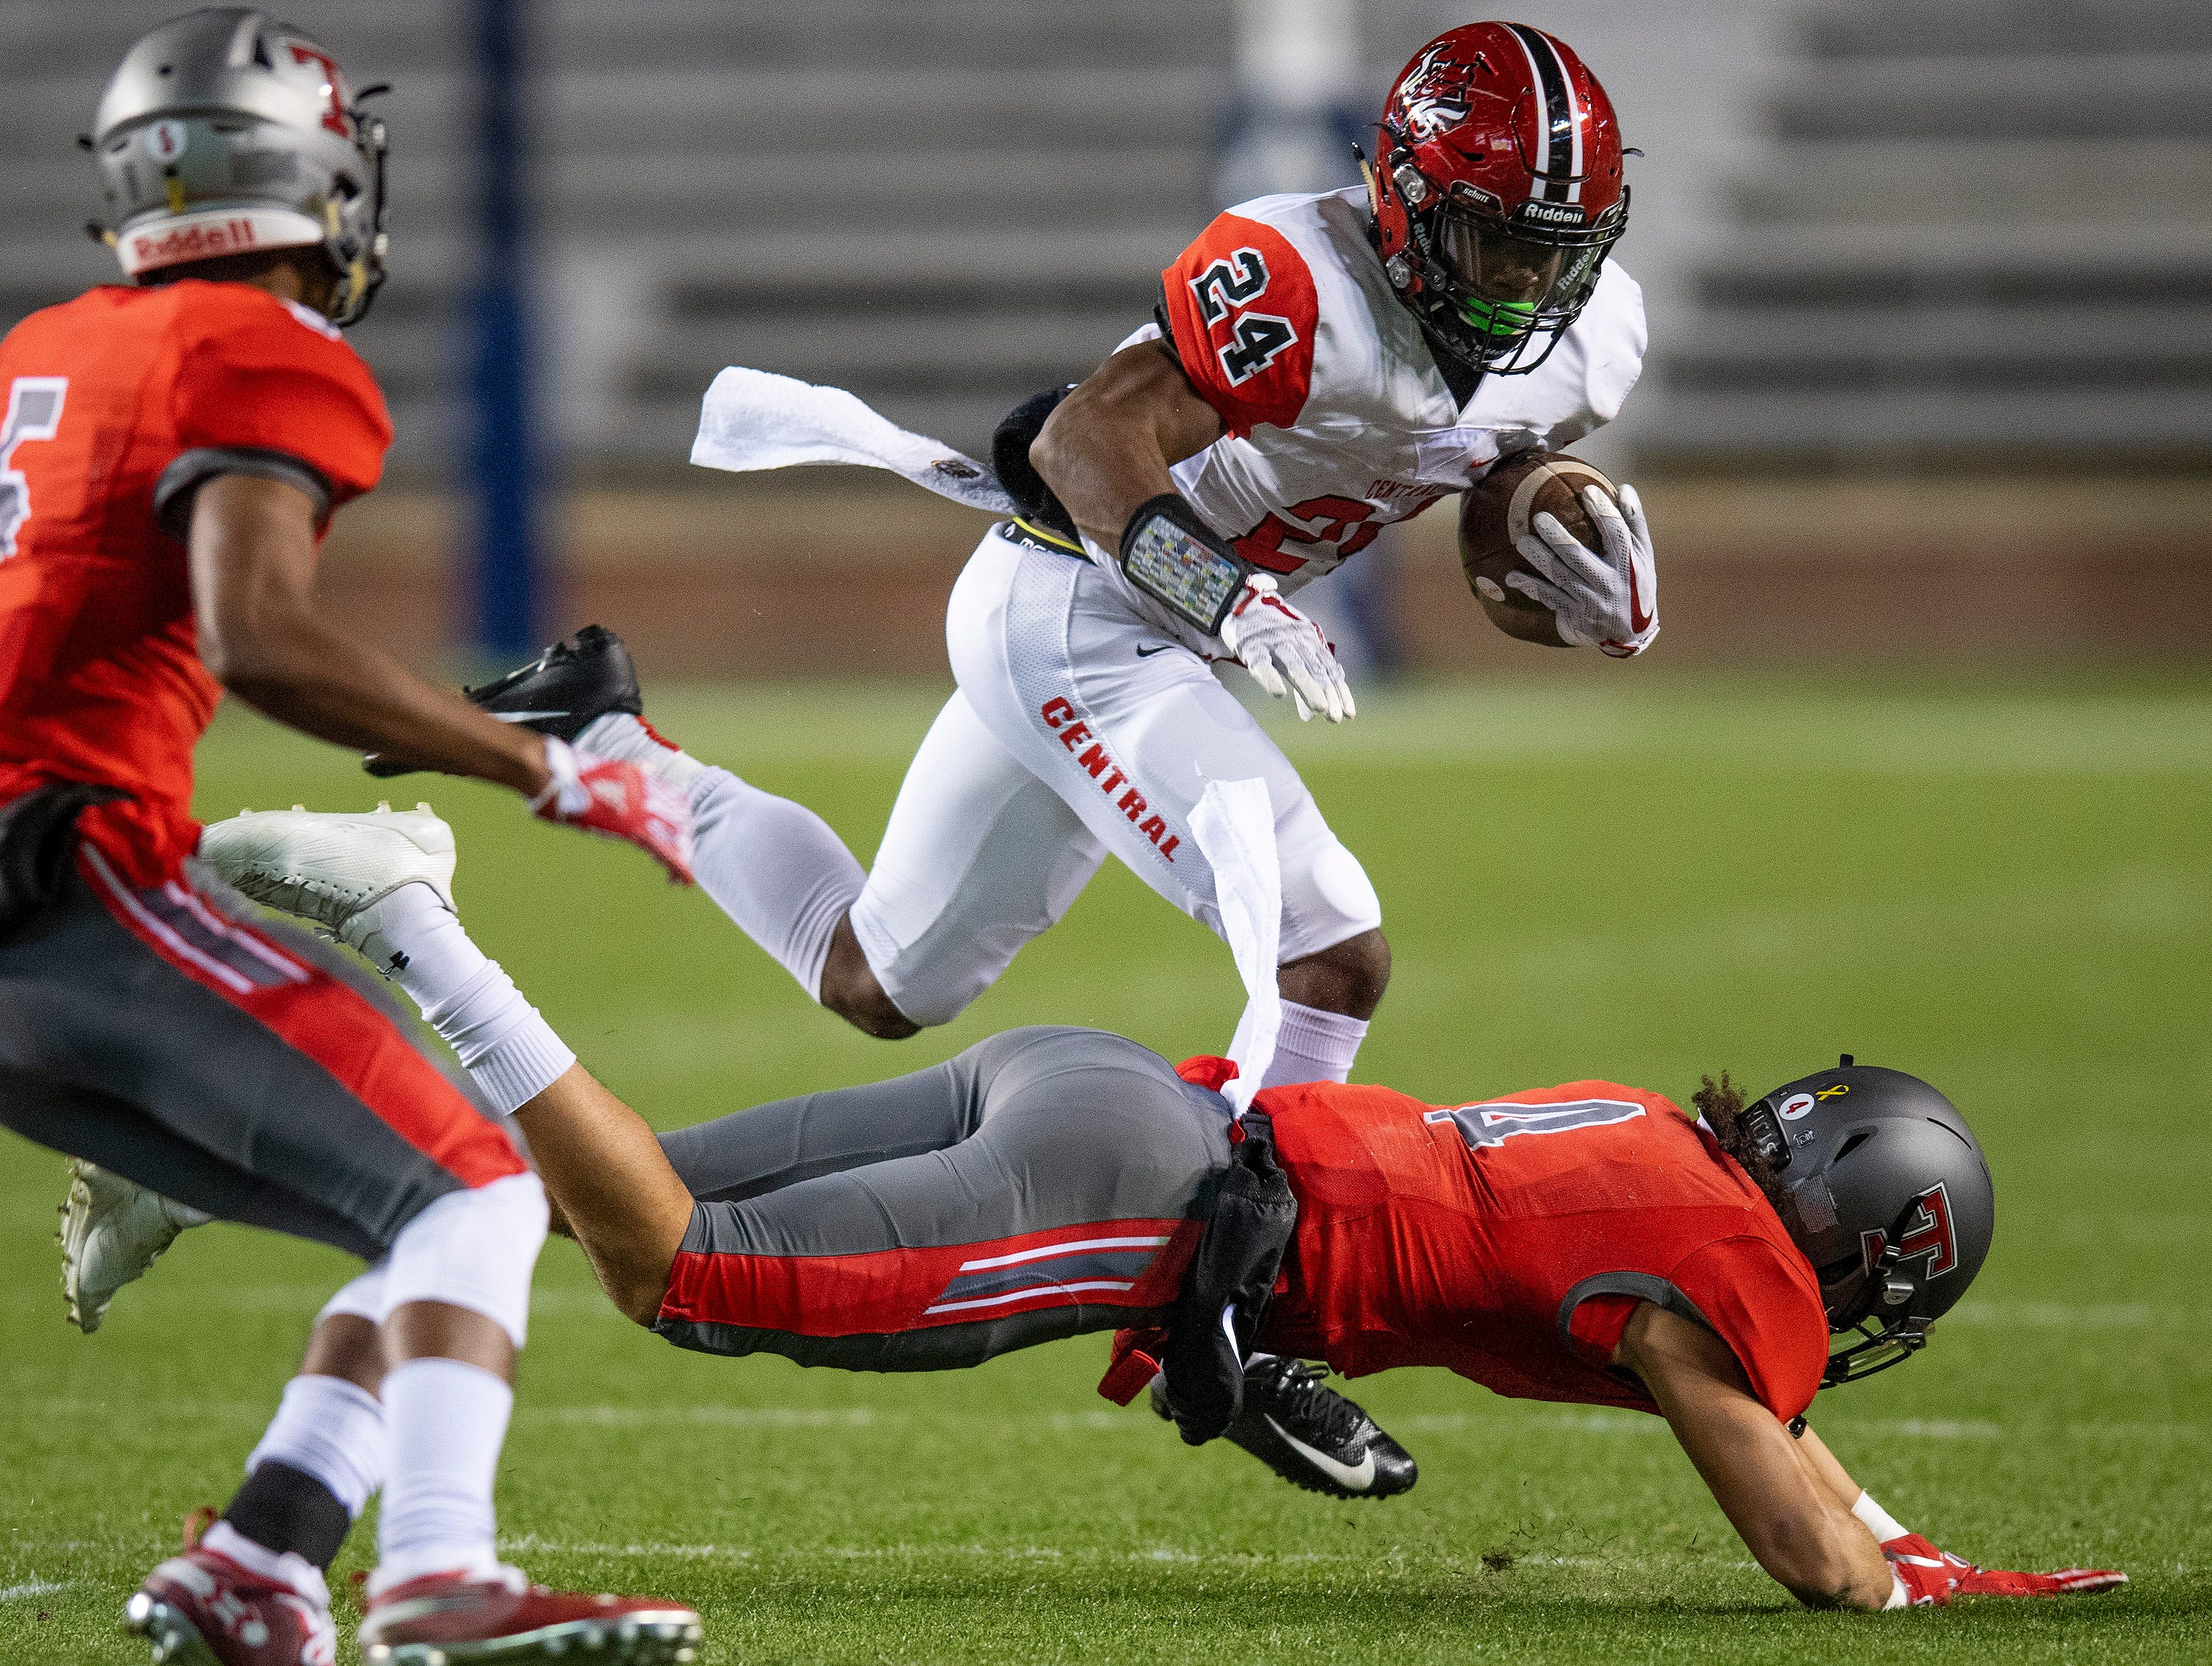 Central-Phenix City's Amontae Spivey is tripped up by Thompson's Jalen Bustamonte during the AHSAA Class 7A State Championship Football Game at Jordan Hare Stadium in Auburn, Ala., on Wednesday evening December 5, 2018.